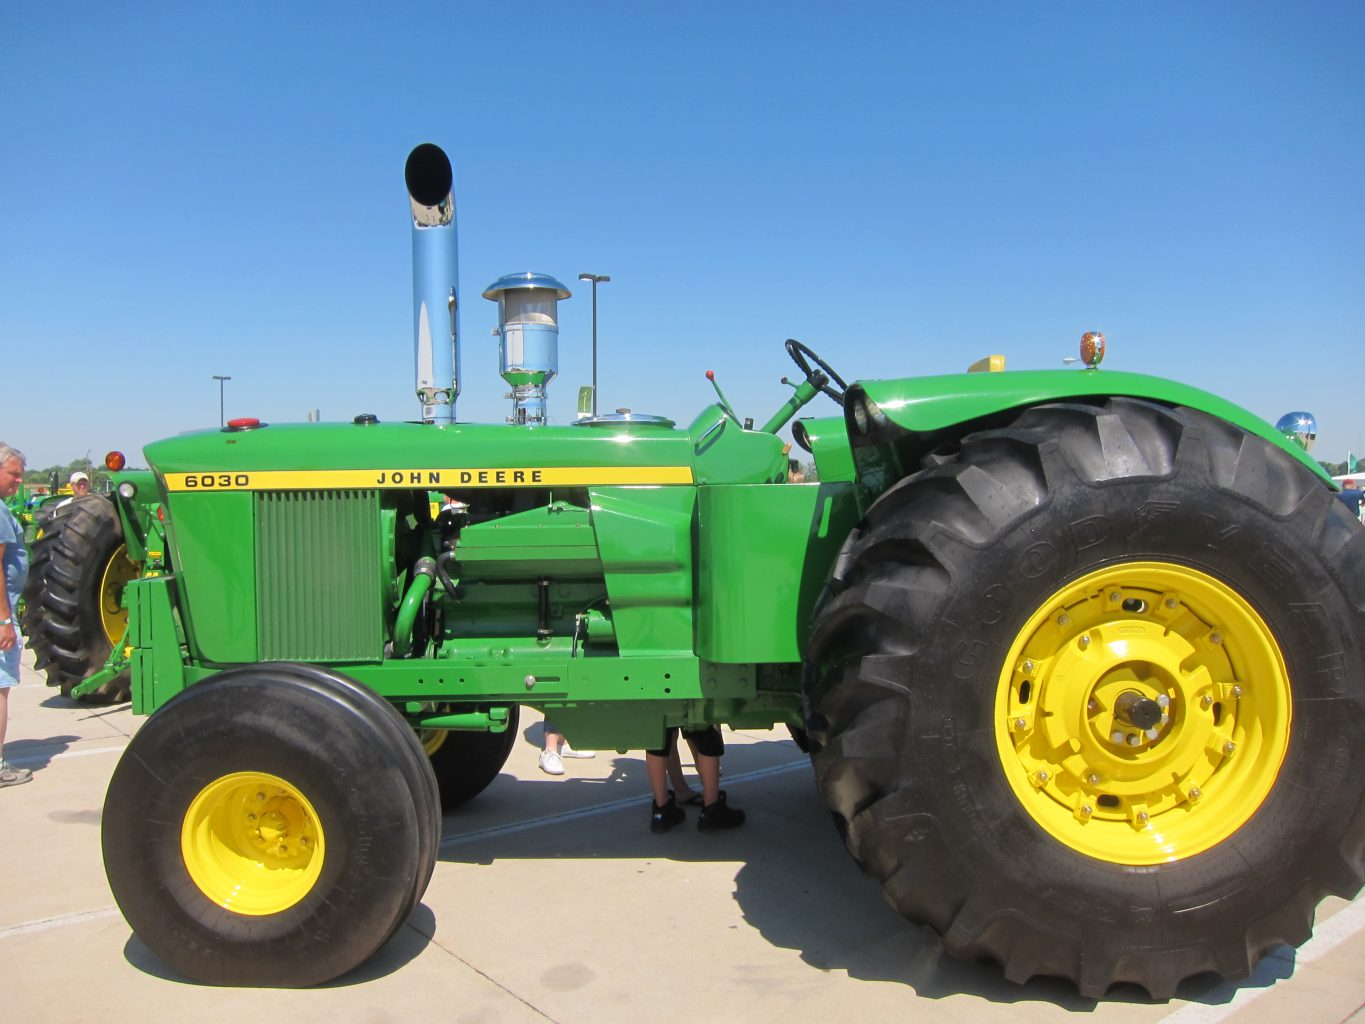 John Deere Engines : John deere overview history parts engine specifications